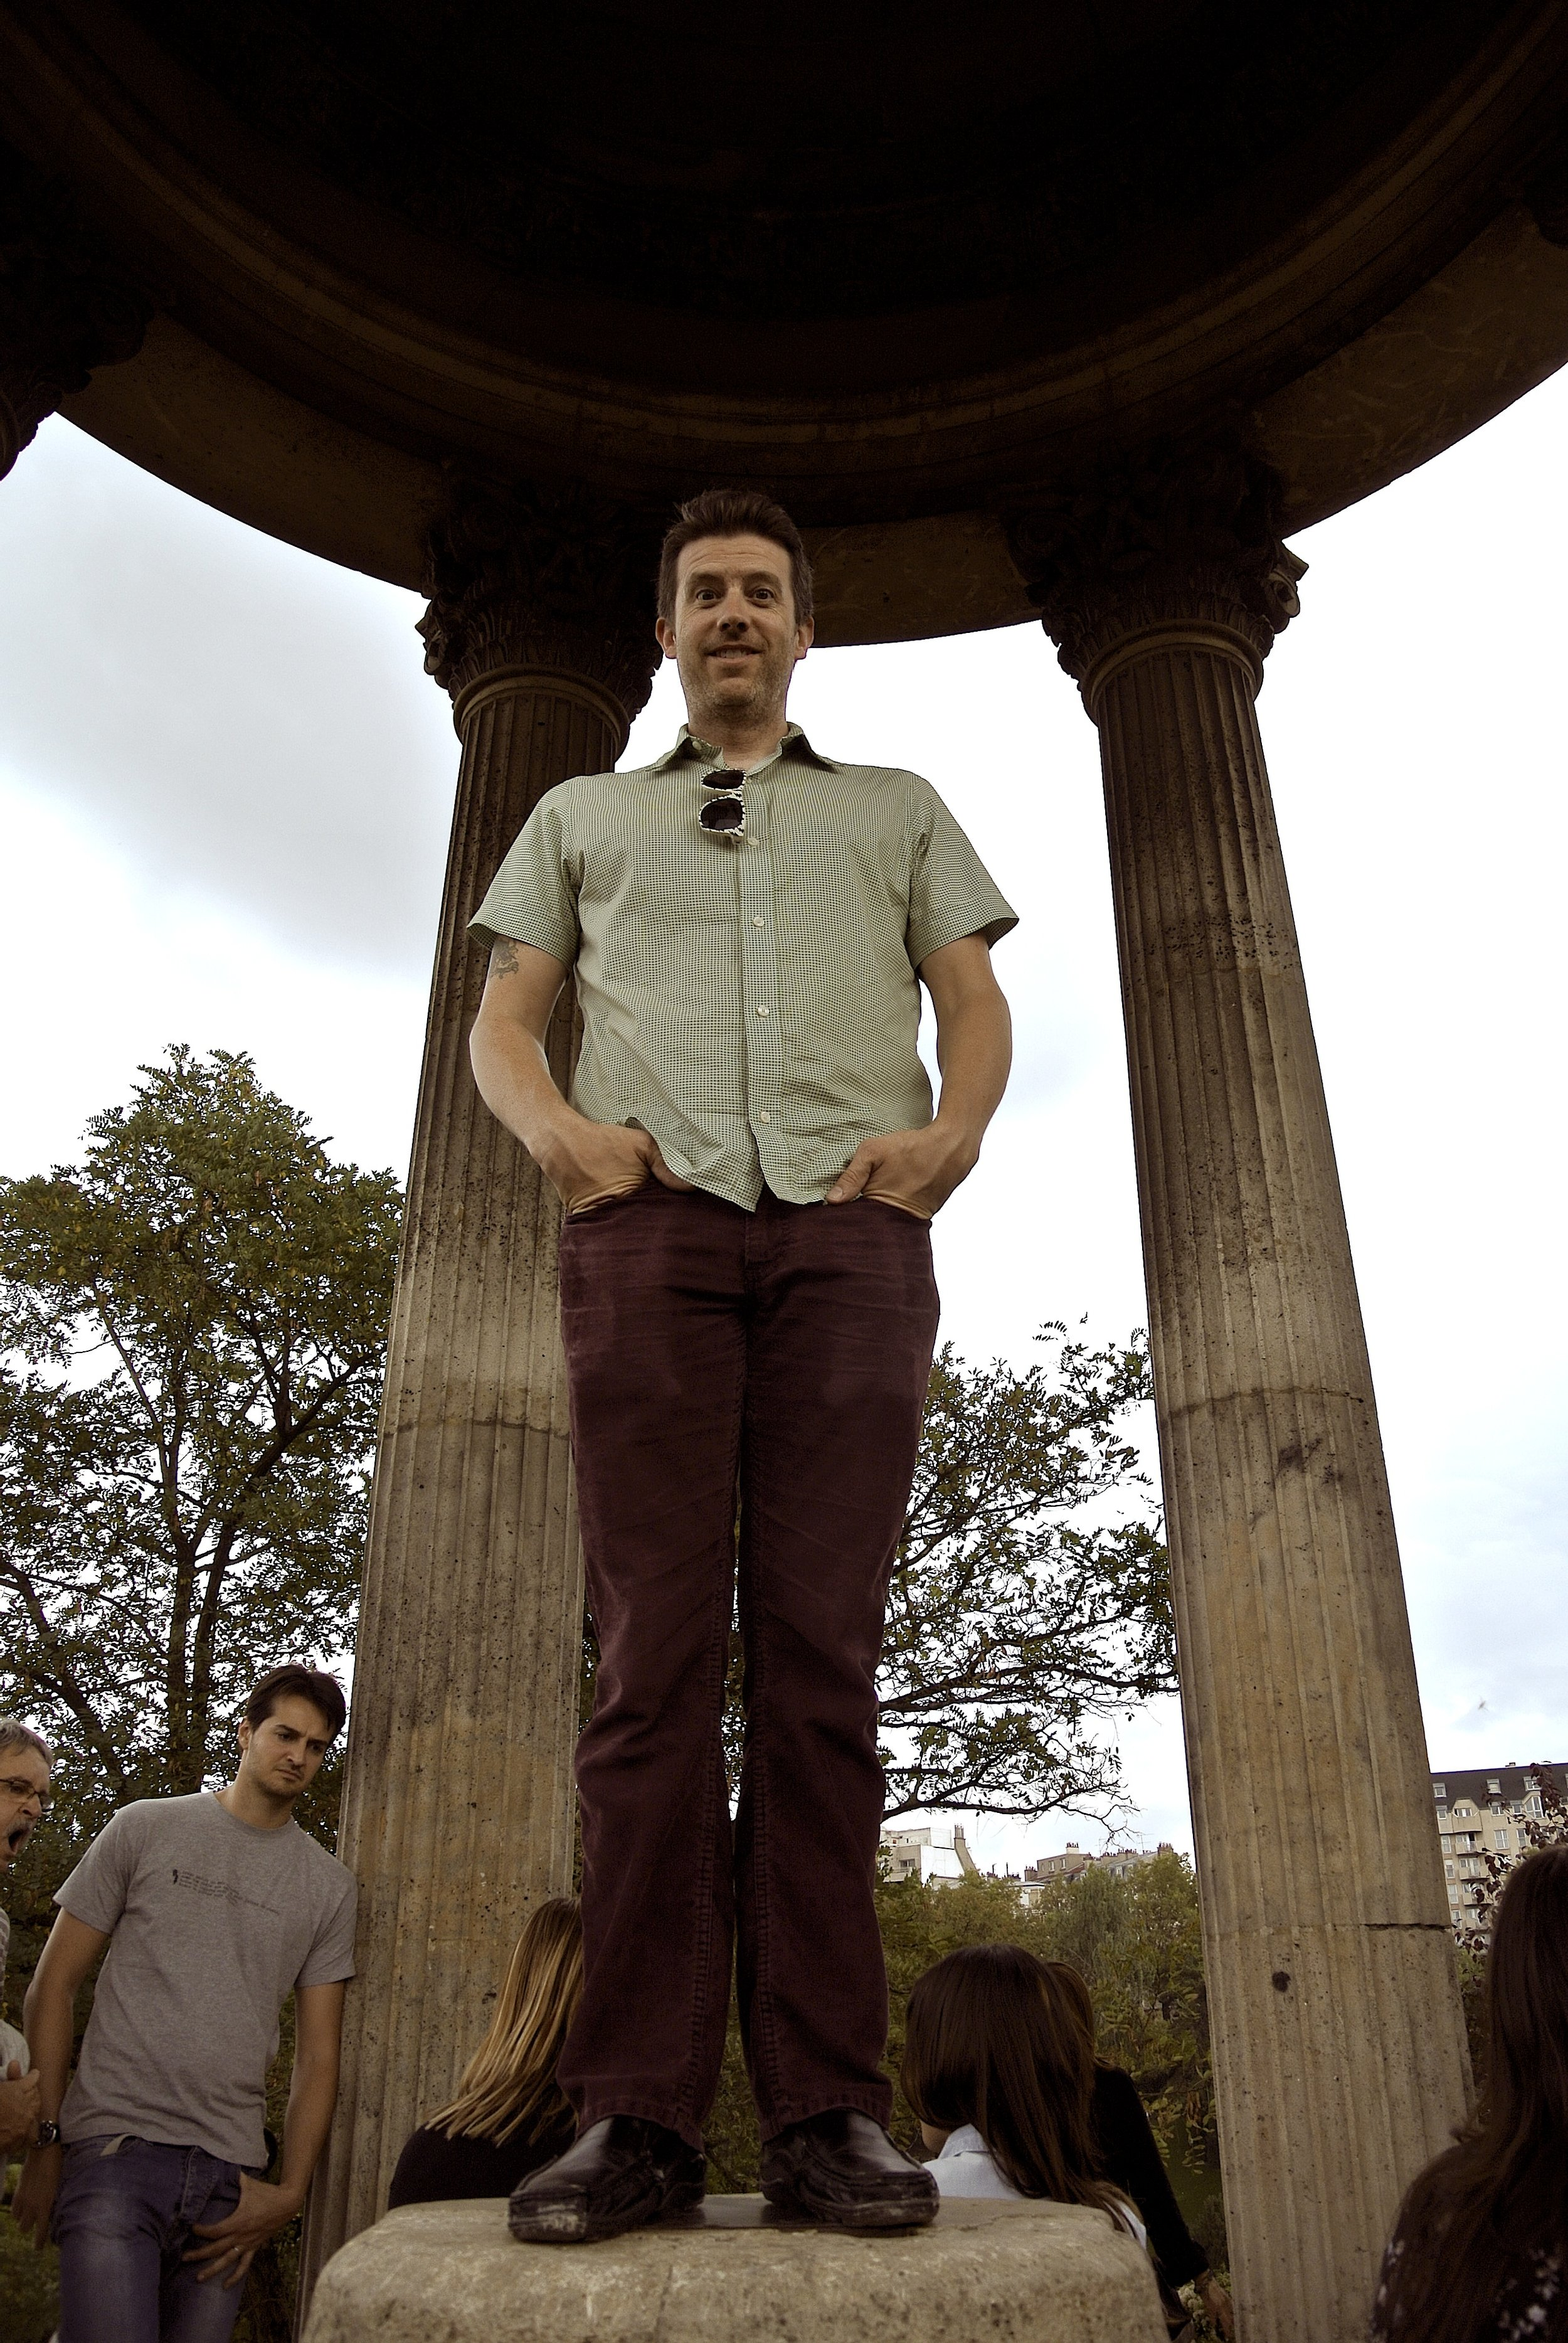 Wally in the folly at Buttes Chaumont